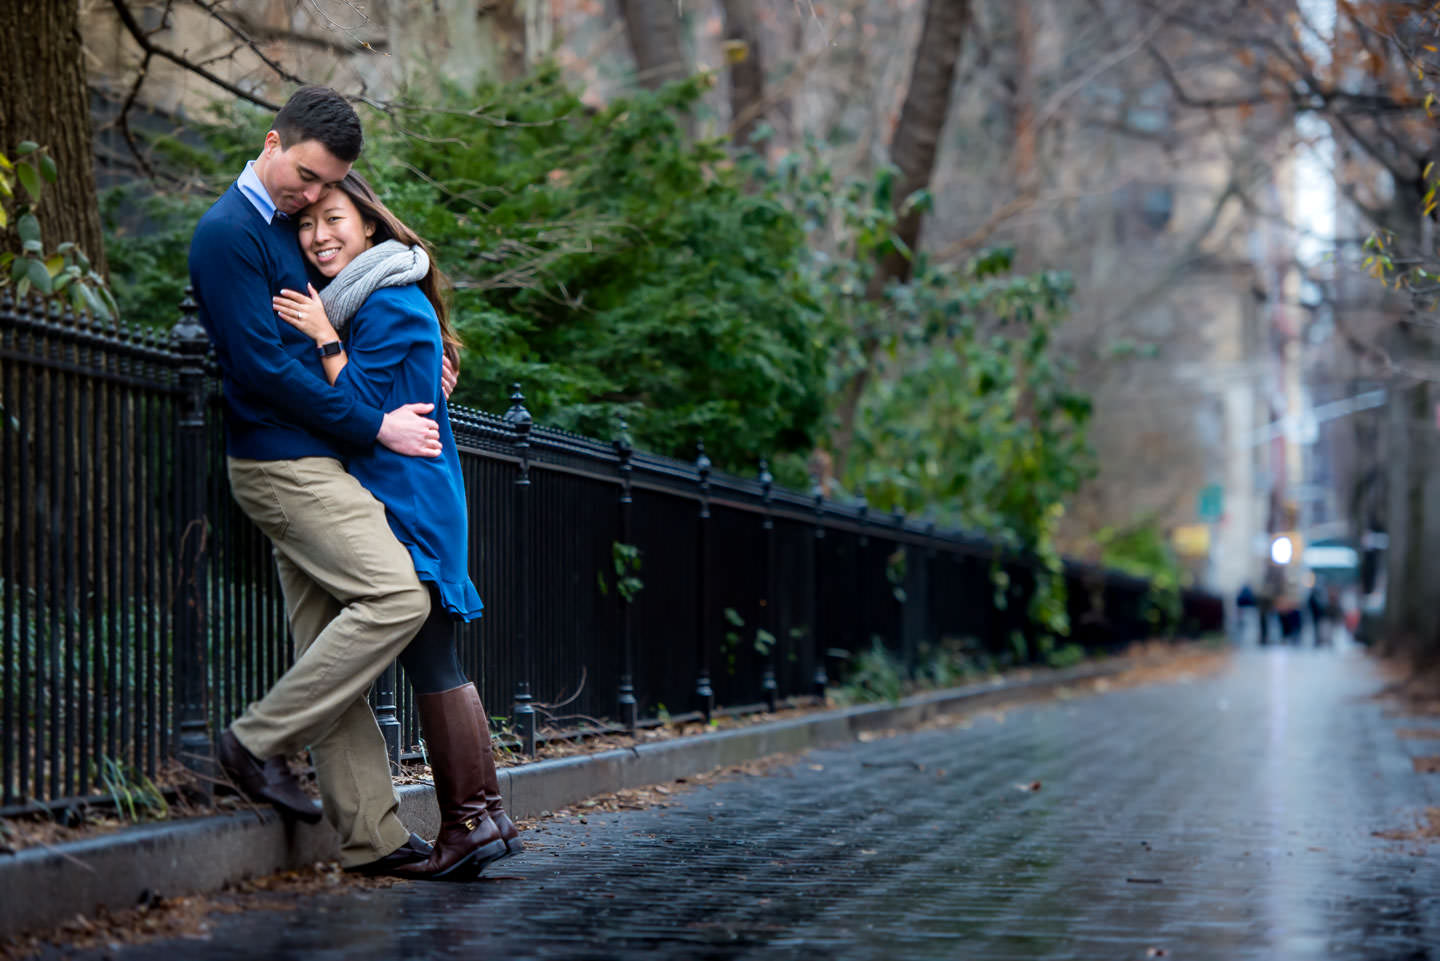 couple on the street with green trees in winter by washington square park in new york city after proposal